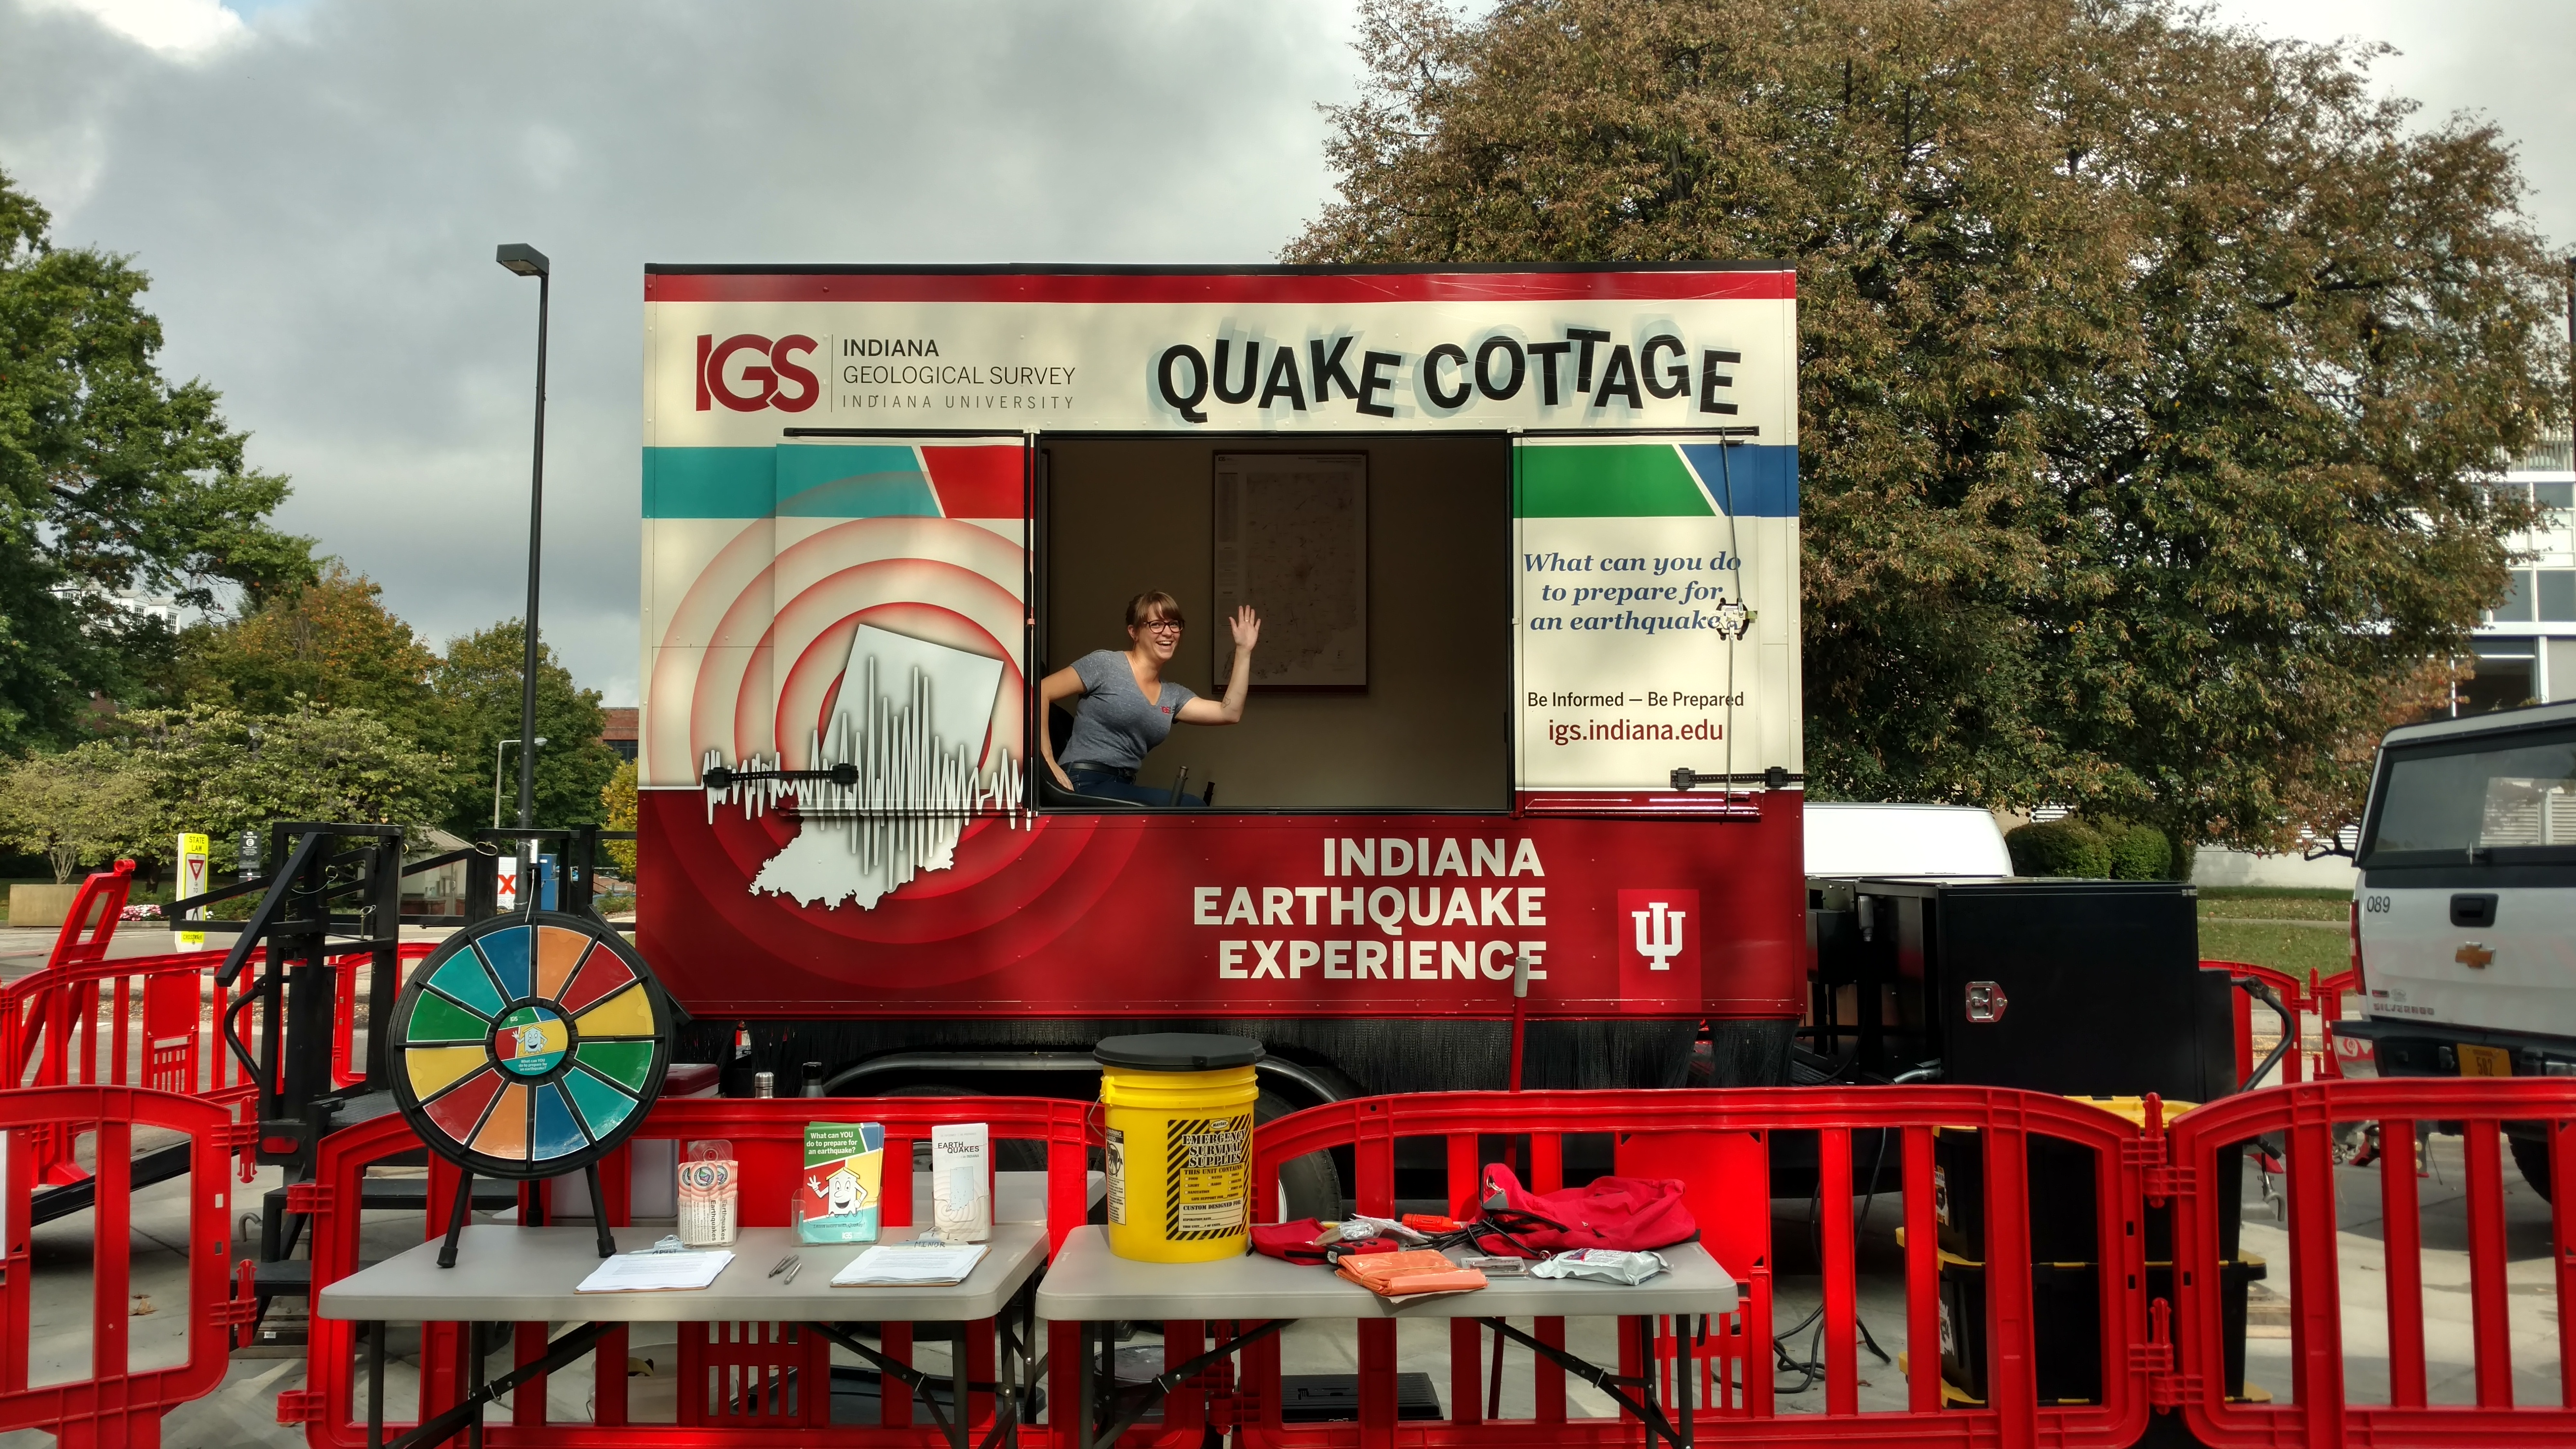 The Quake Cottage is a 14-foot-tall trailer that simulates the shaking experienced during an earthquake.